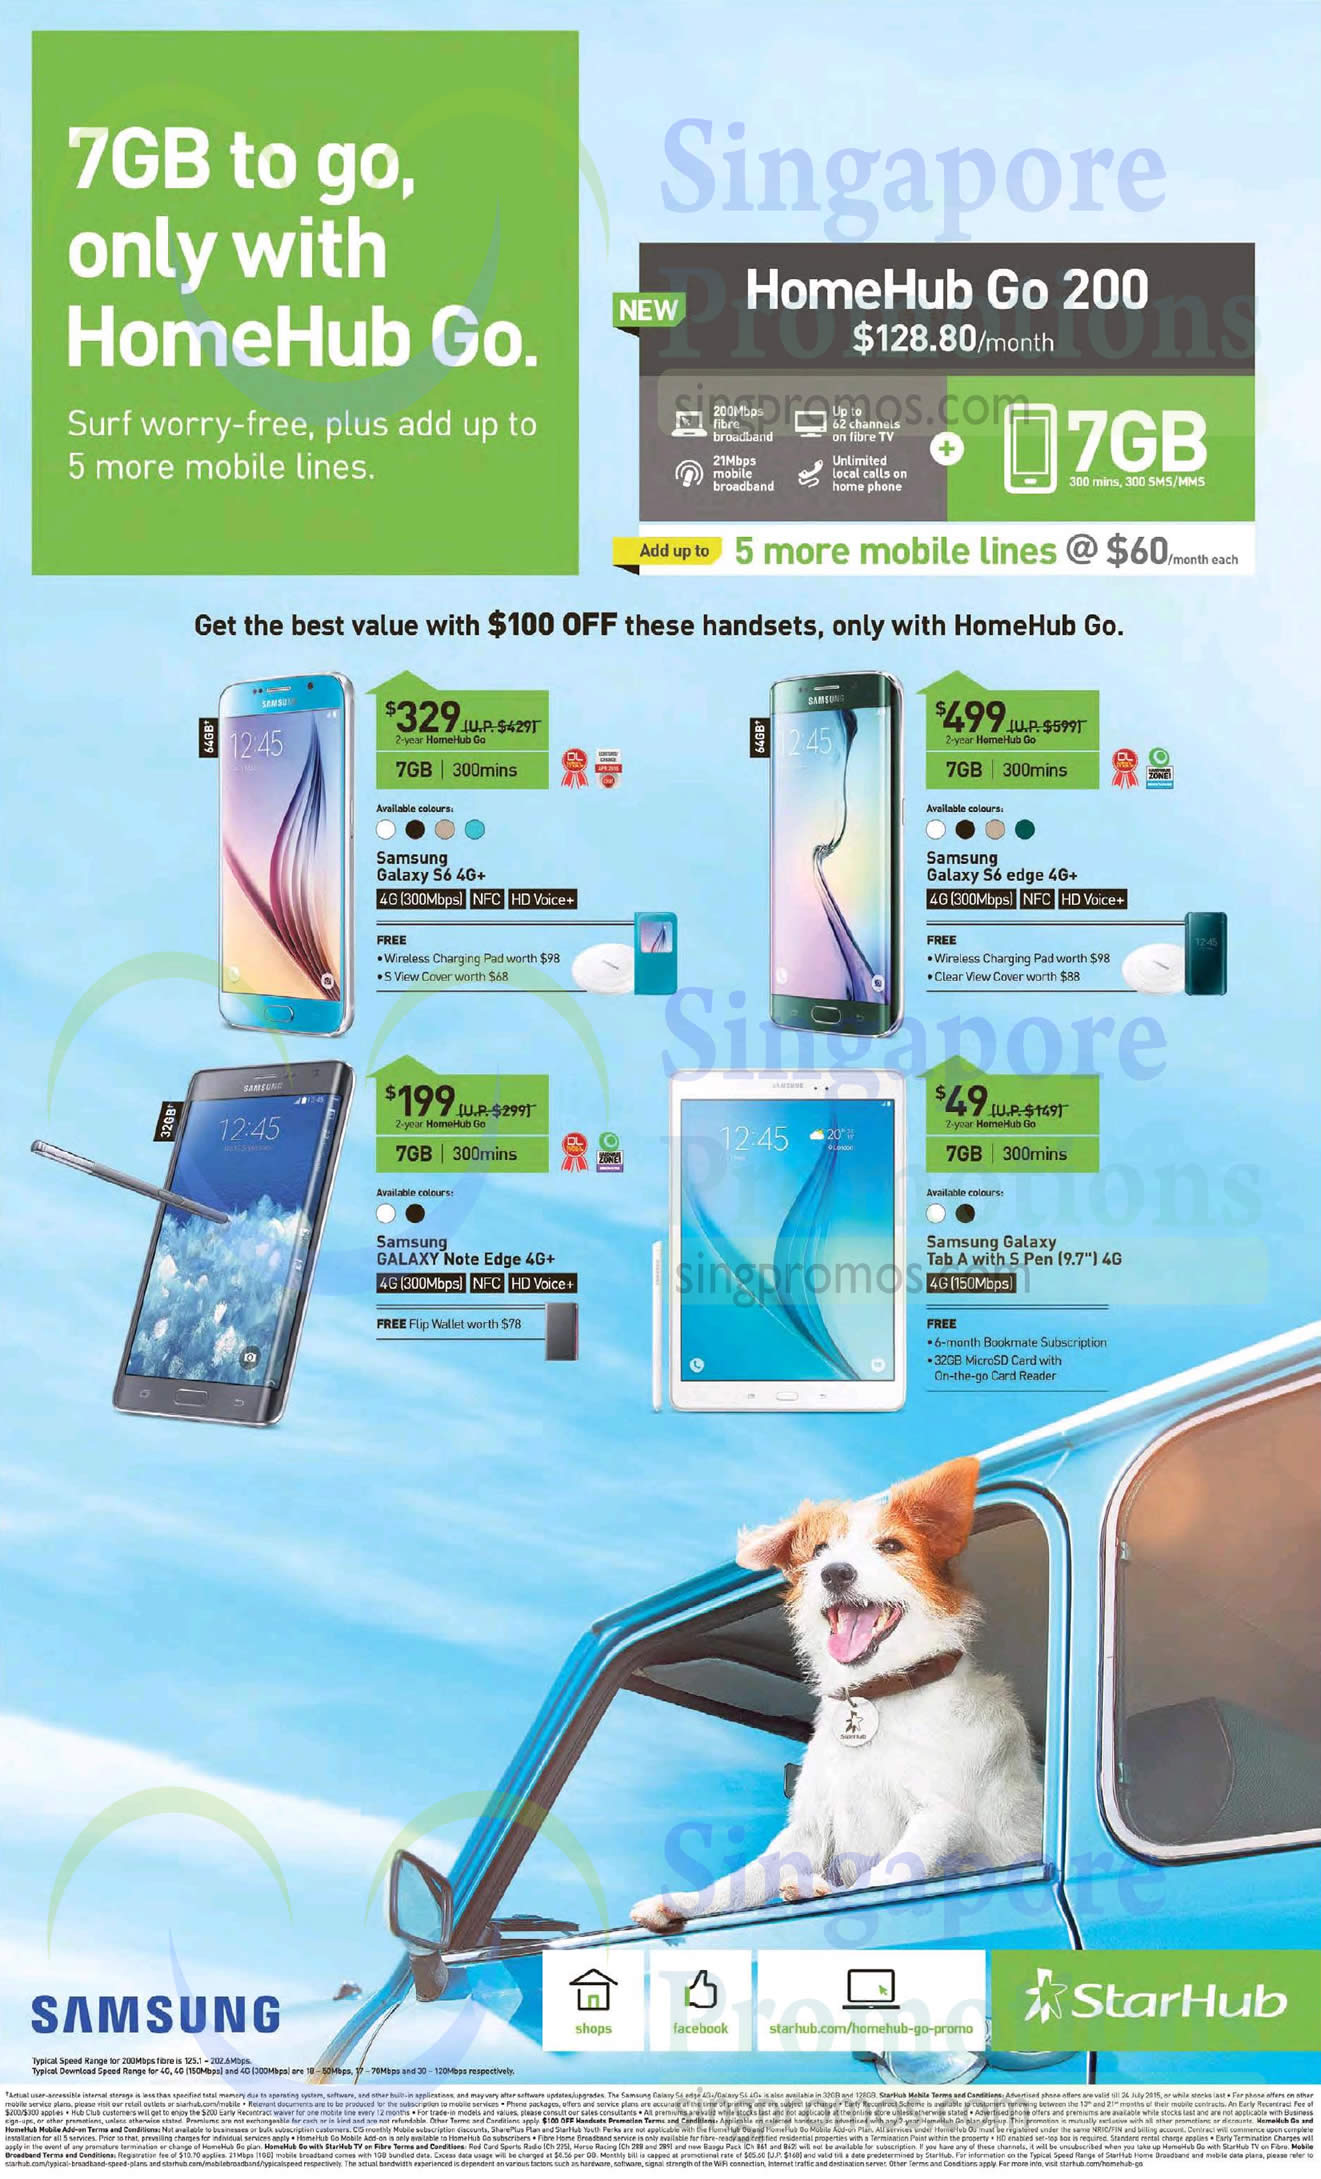 128.80 HomeHub Go 200, Samsung Galaxy S6, Samsung Galaxy S6 Edge, Samsung Galaxy Note Edge, Samsung Galaxy Tab A 9.7